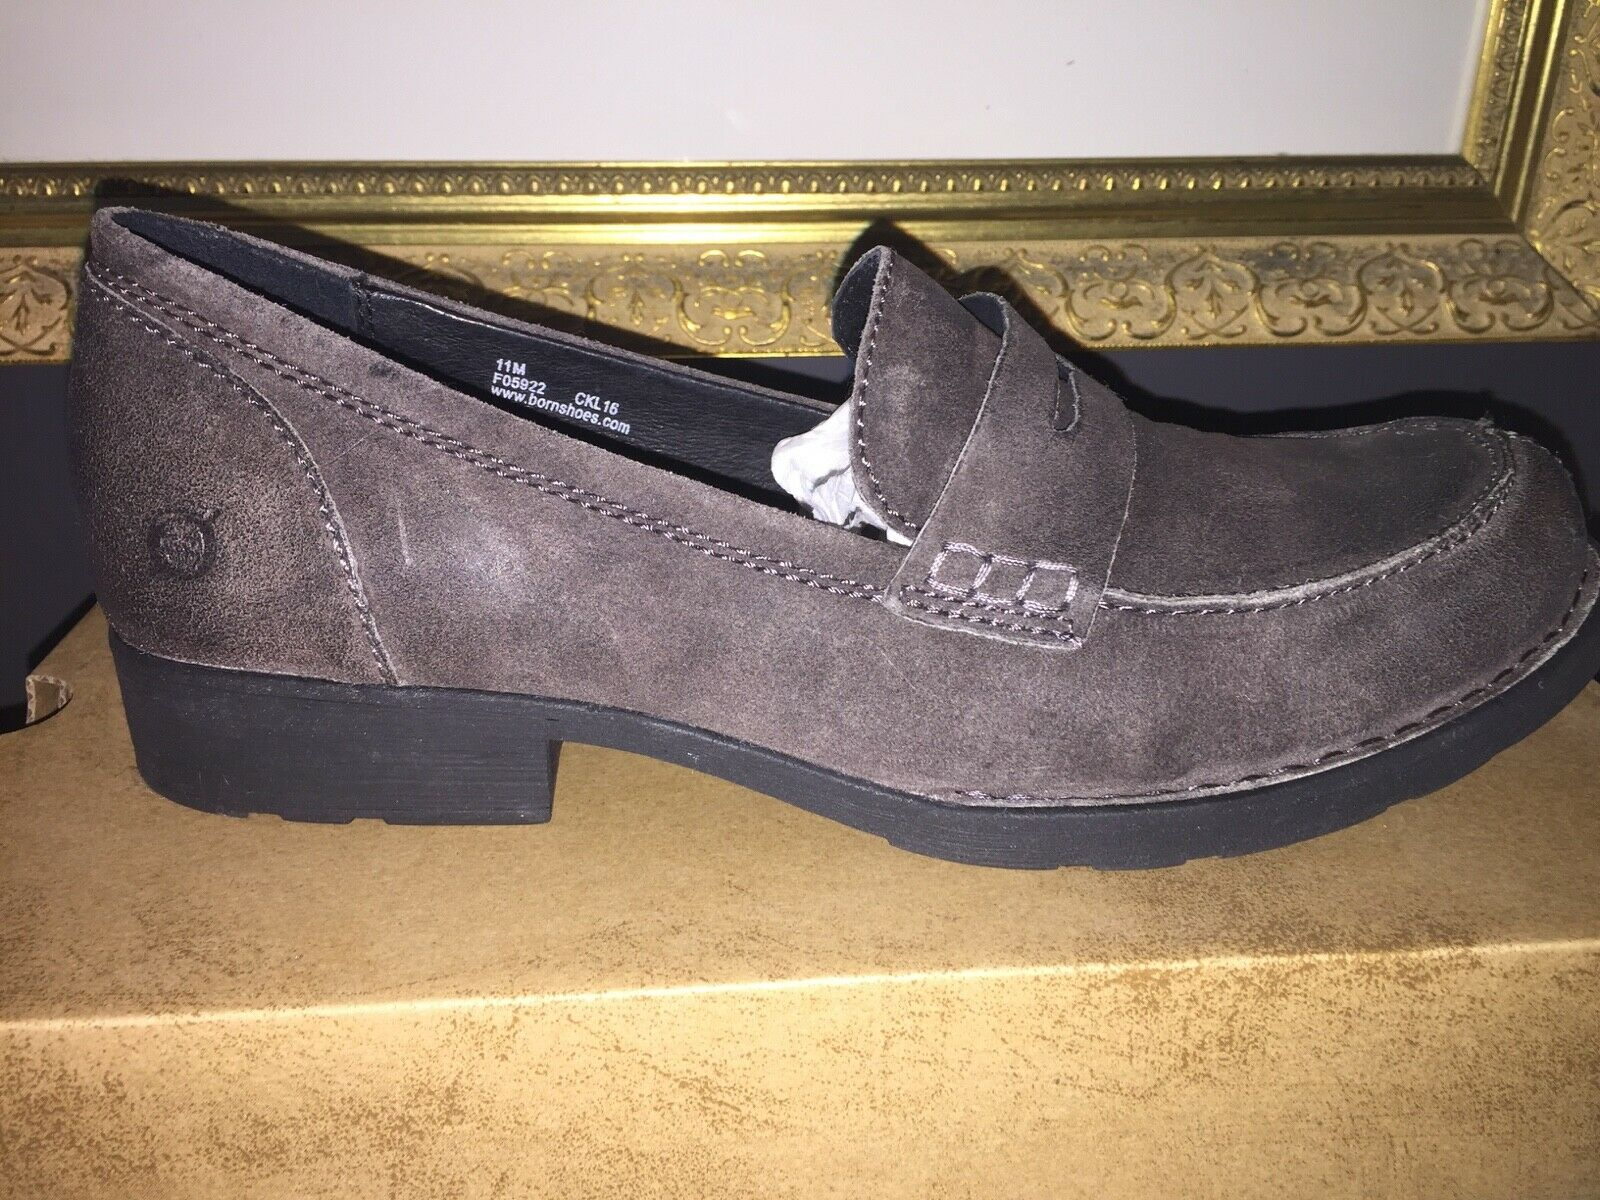 NEW Born Clog Penny BURR Loafers - Comfort PELTRO Distressed Leather WMS SZ 11